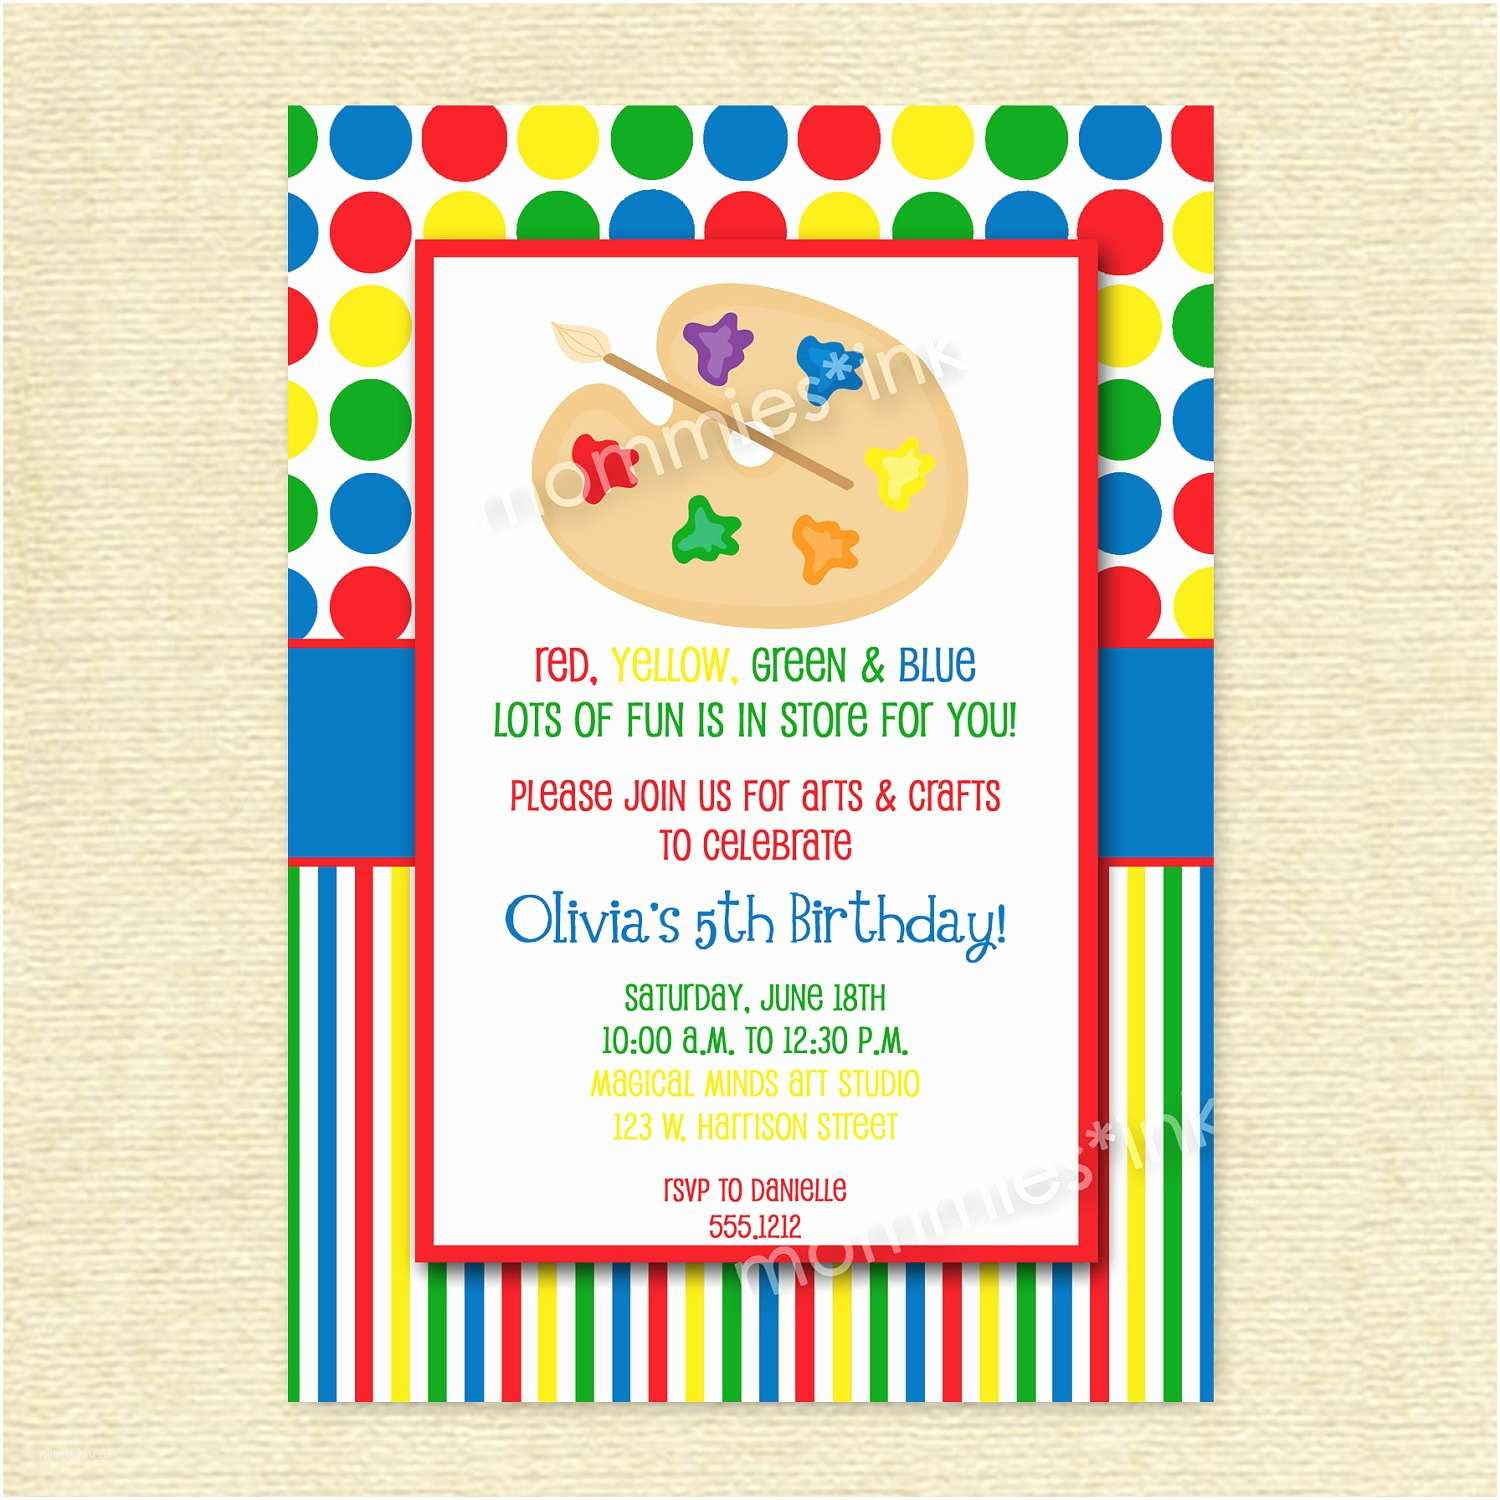 Painting Birthday Party Invitations Art Party Invitations Free Templates